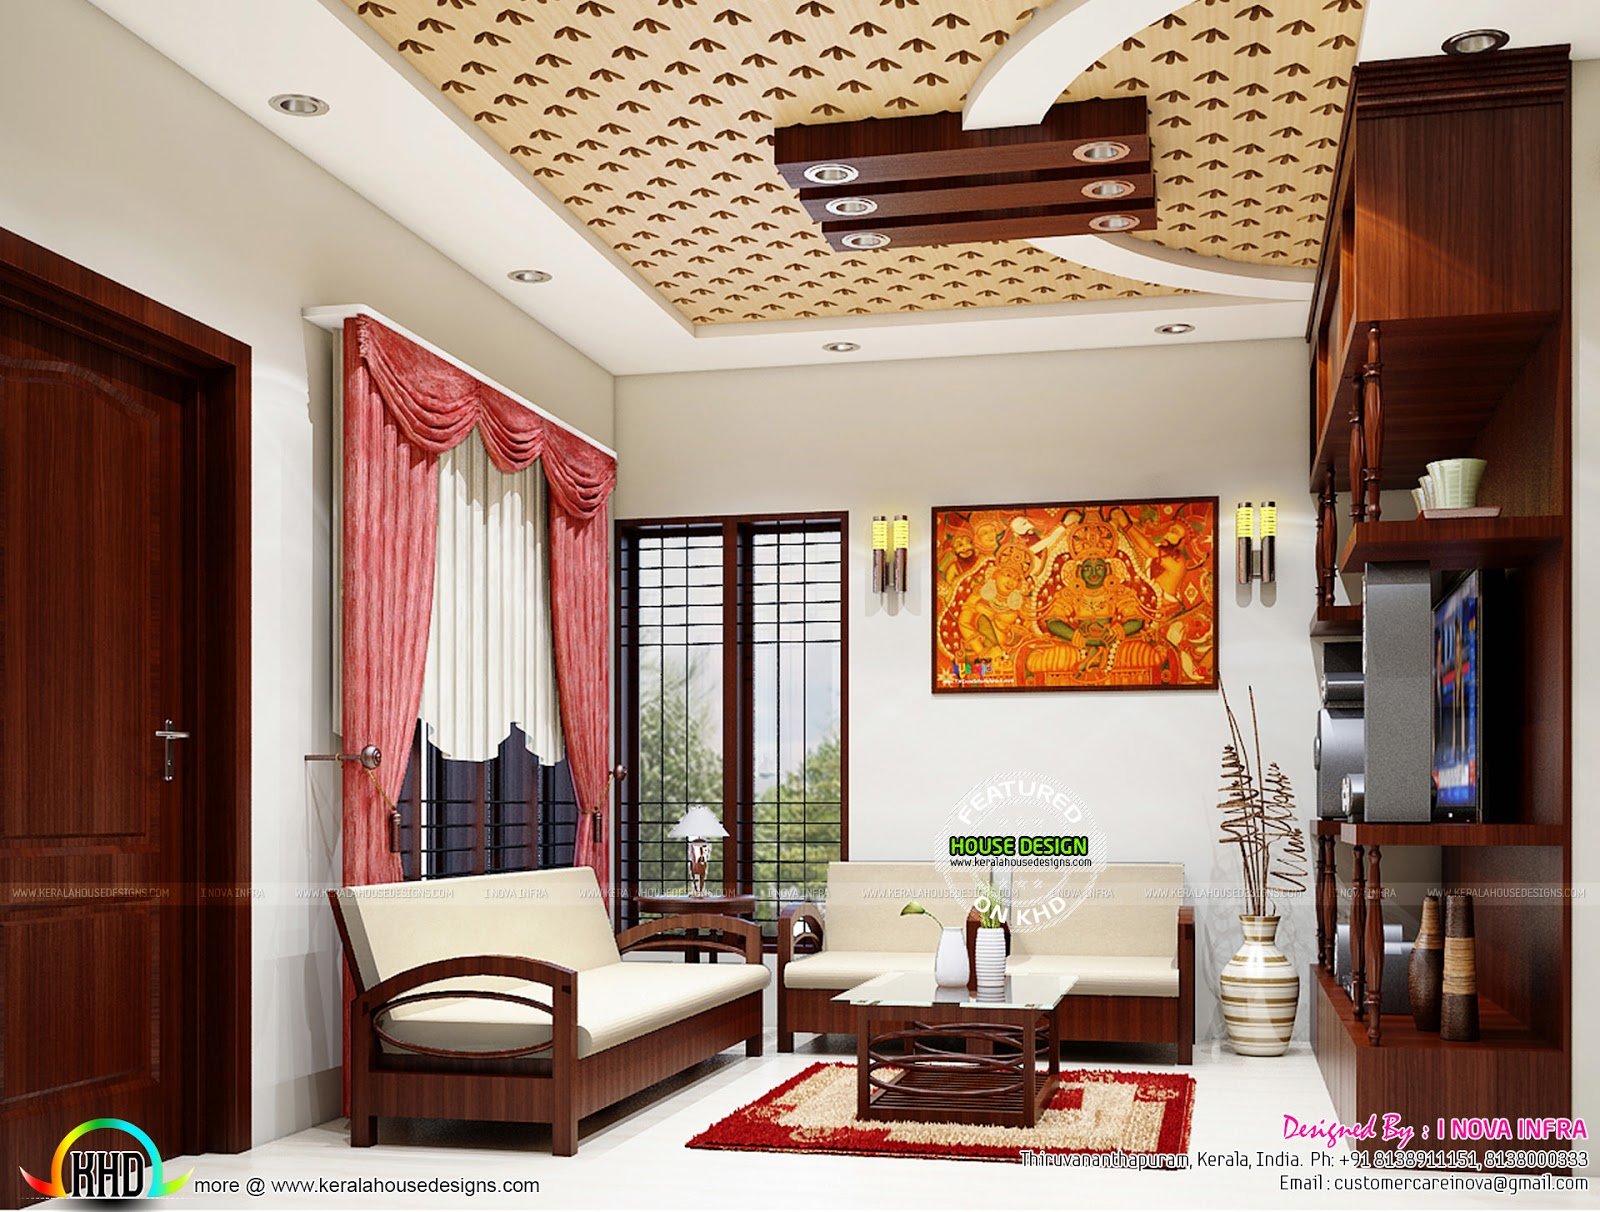 Kerala traditional interiors kerala home design and for House design photos interior design